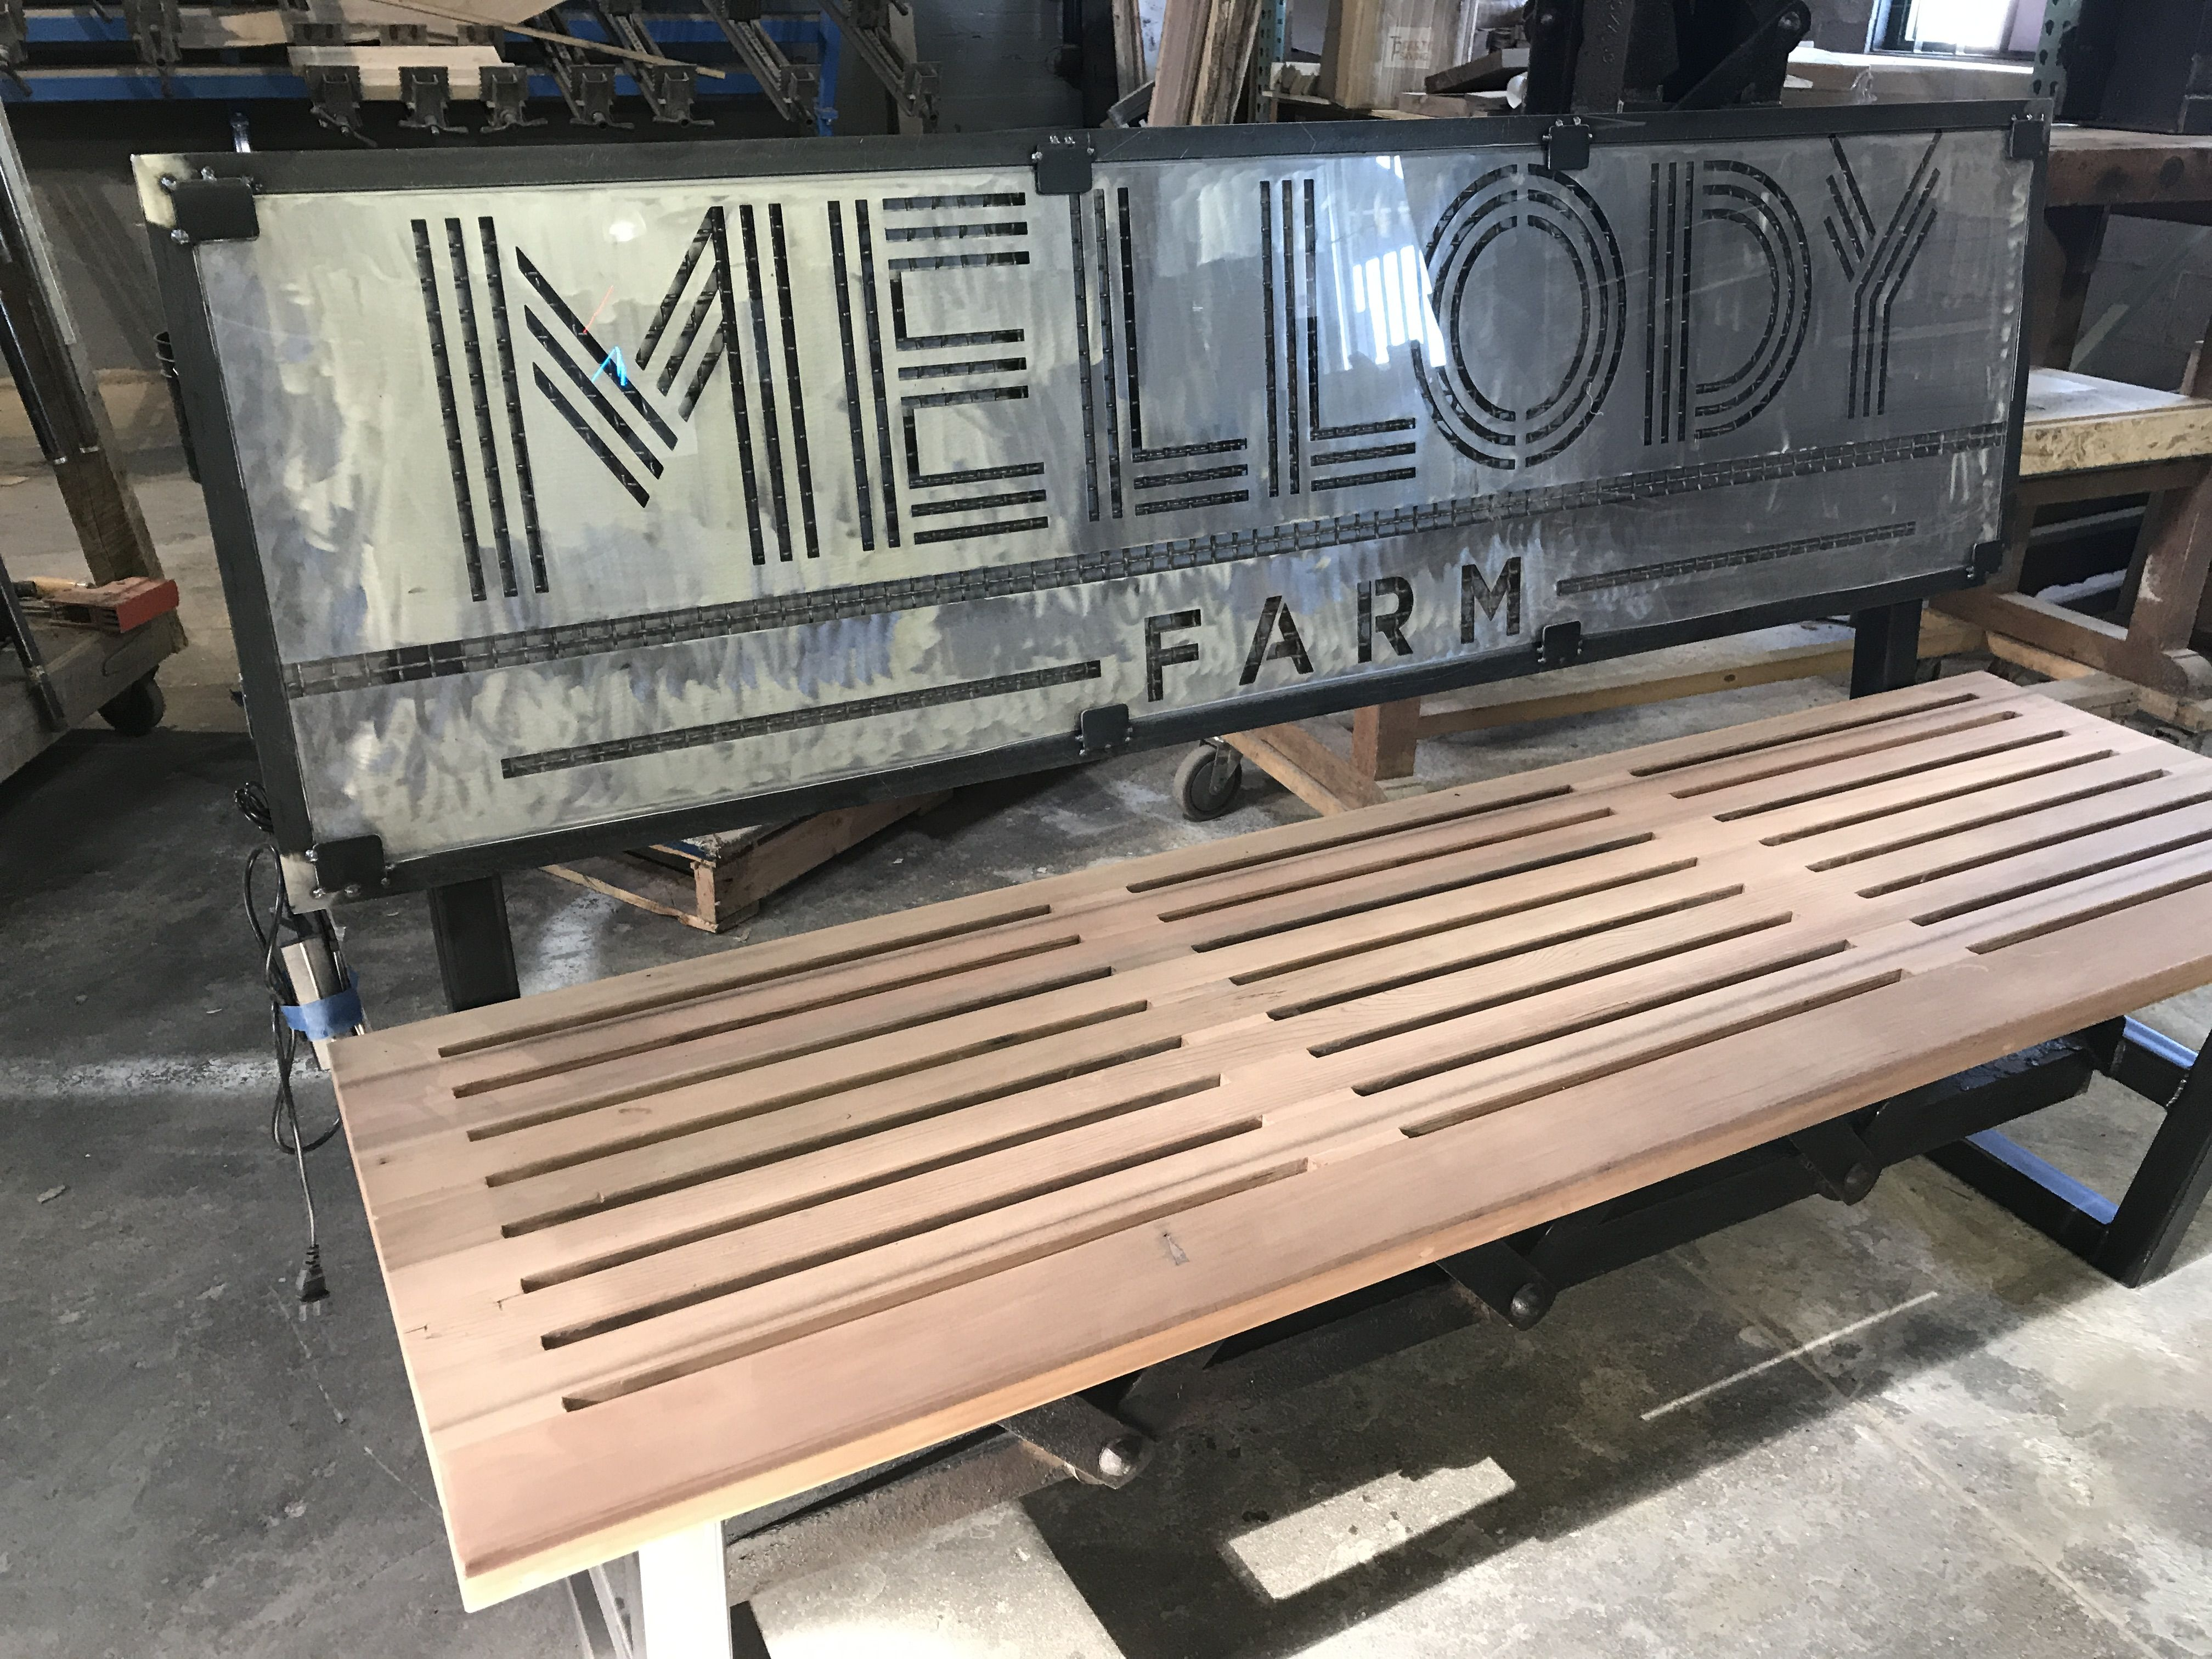 Custom Made Outdoor Bench Rustic Bench Patio Furniture By Raymond Guest Tailgate Bench Rustic Wood Bench Truck Tailgate Bench